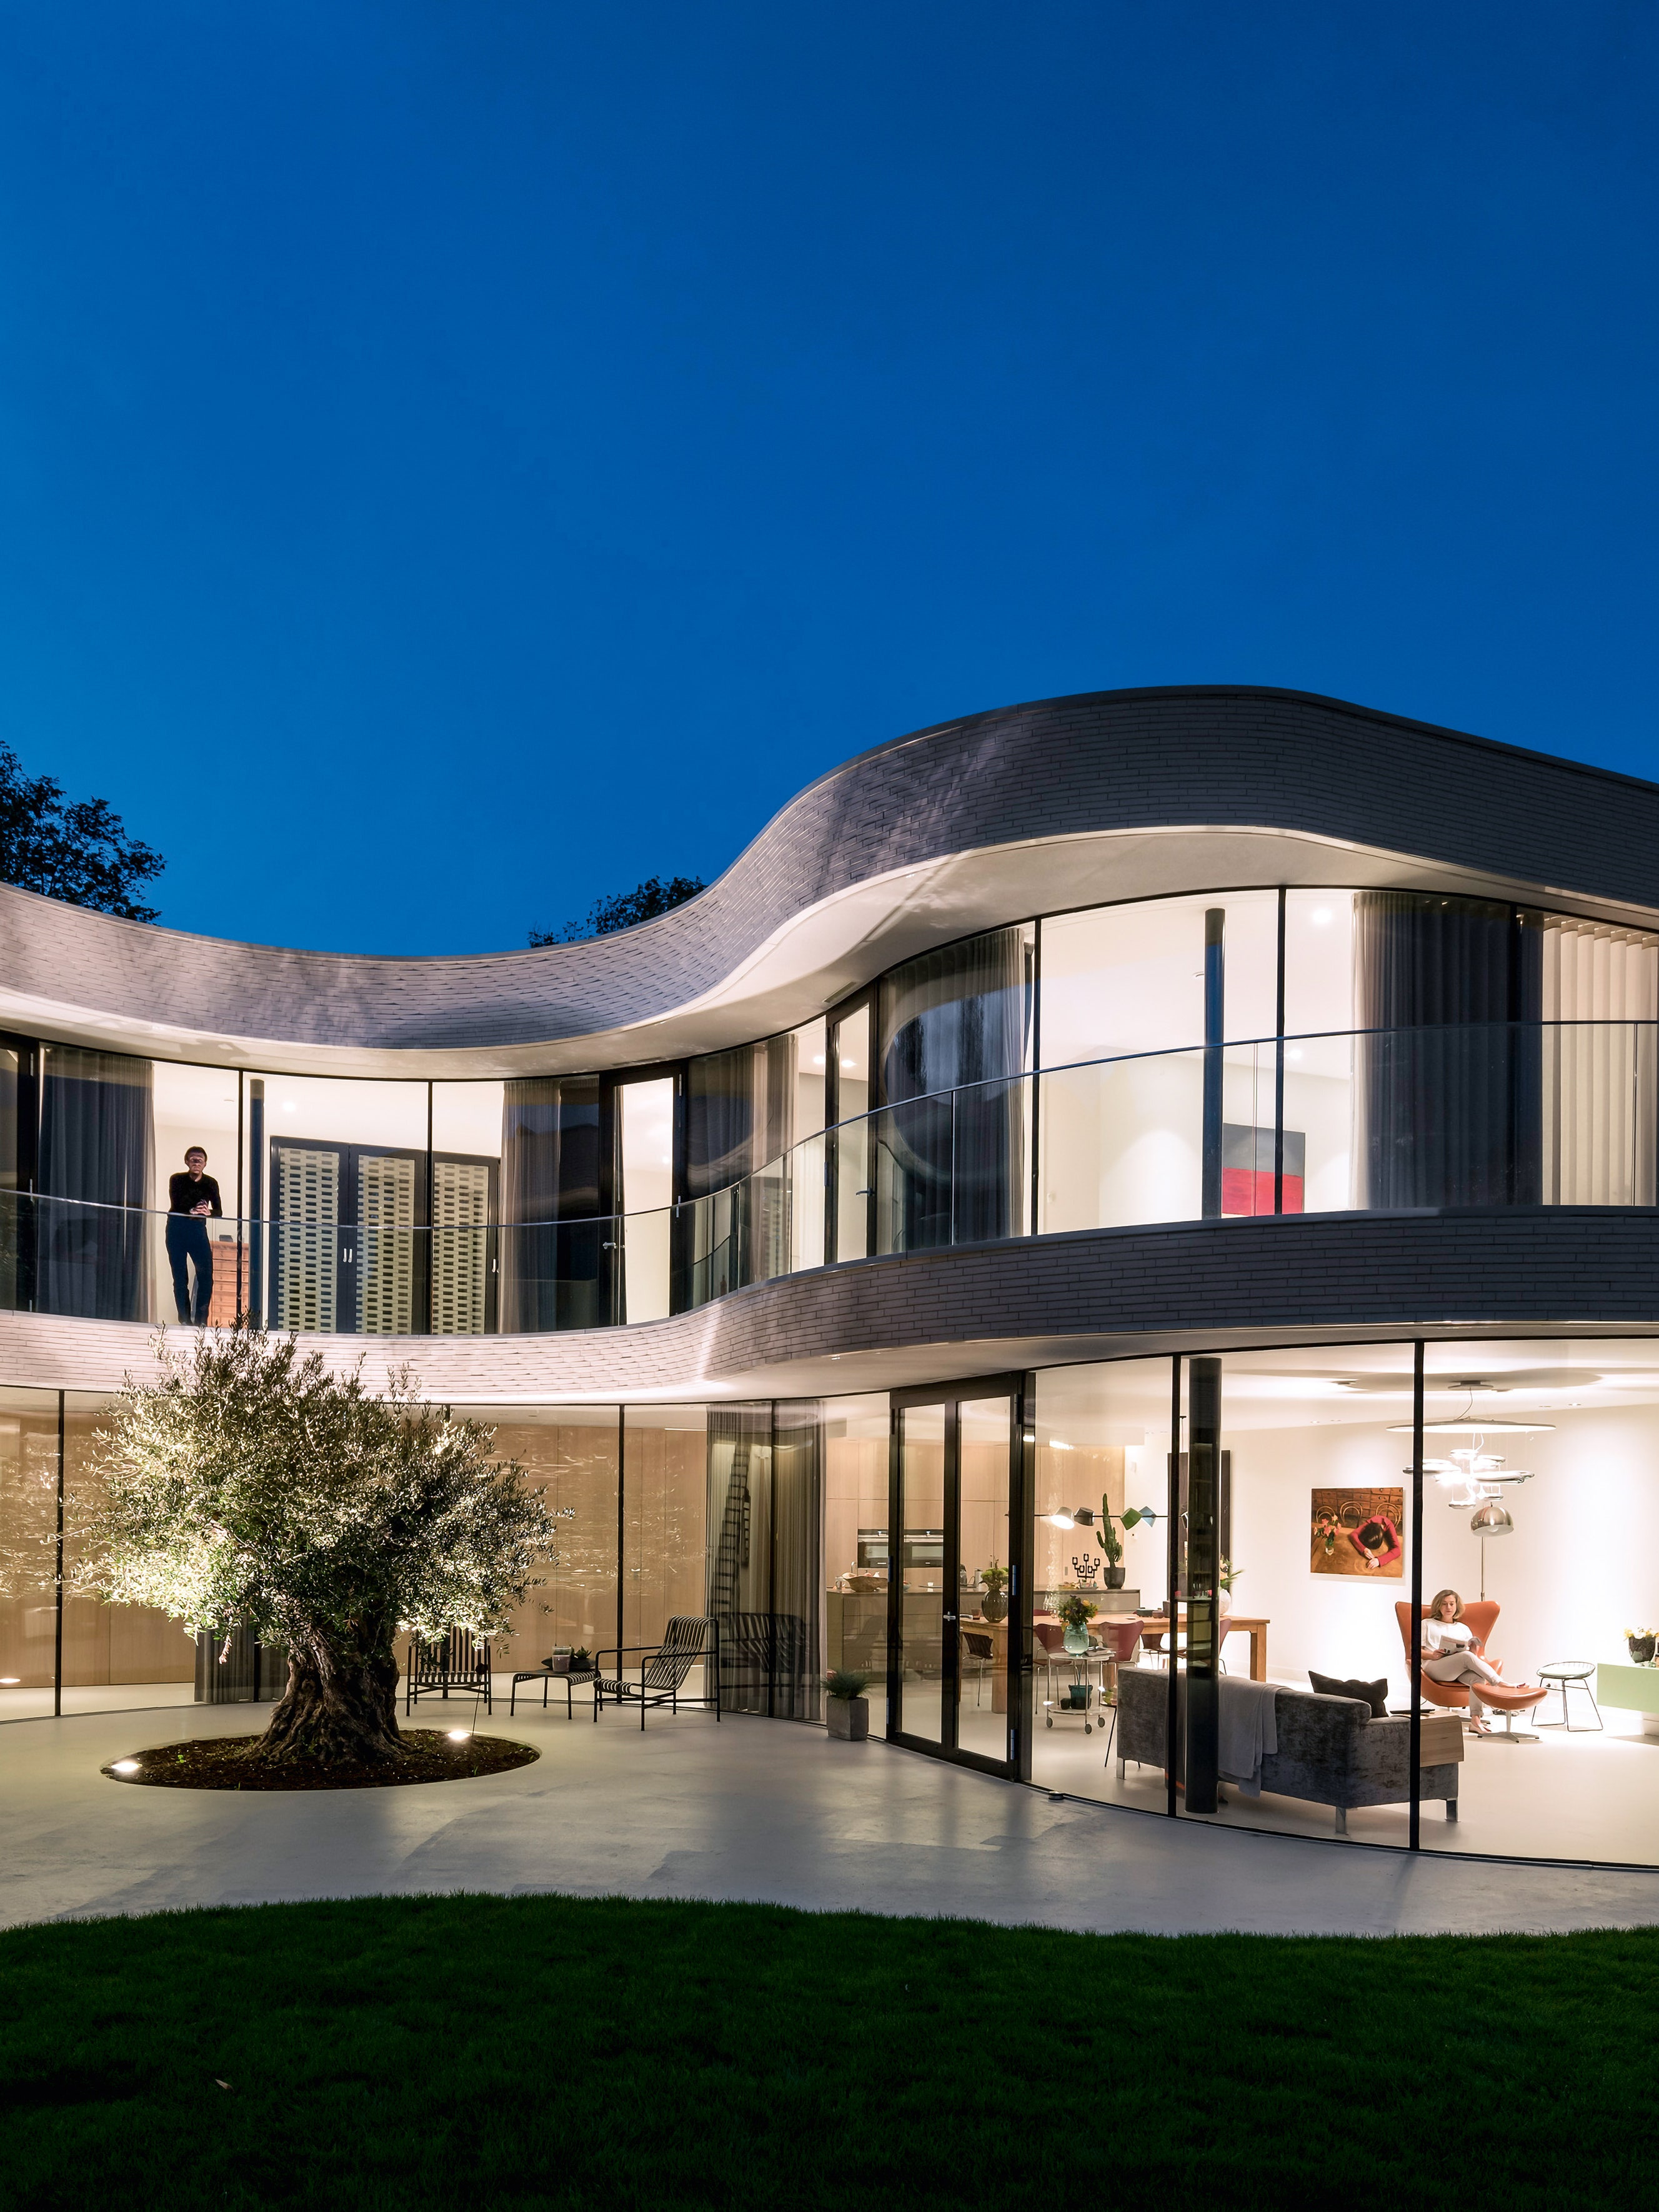 Beautiful Homes In the World Lovely Jaw Dropping Contemporary Homes From Across the Globe